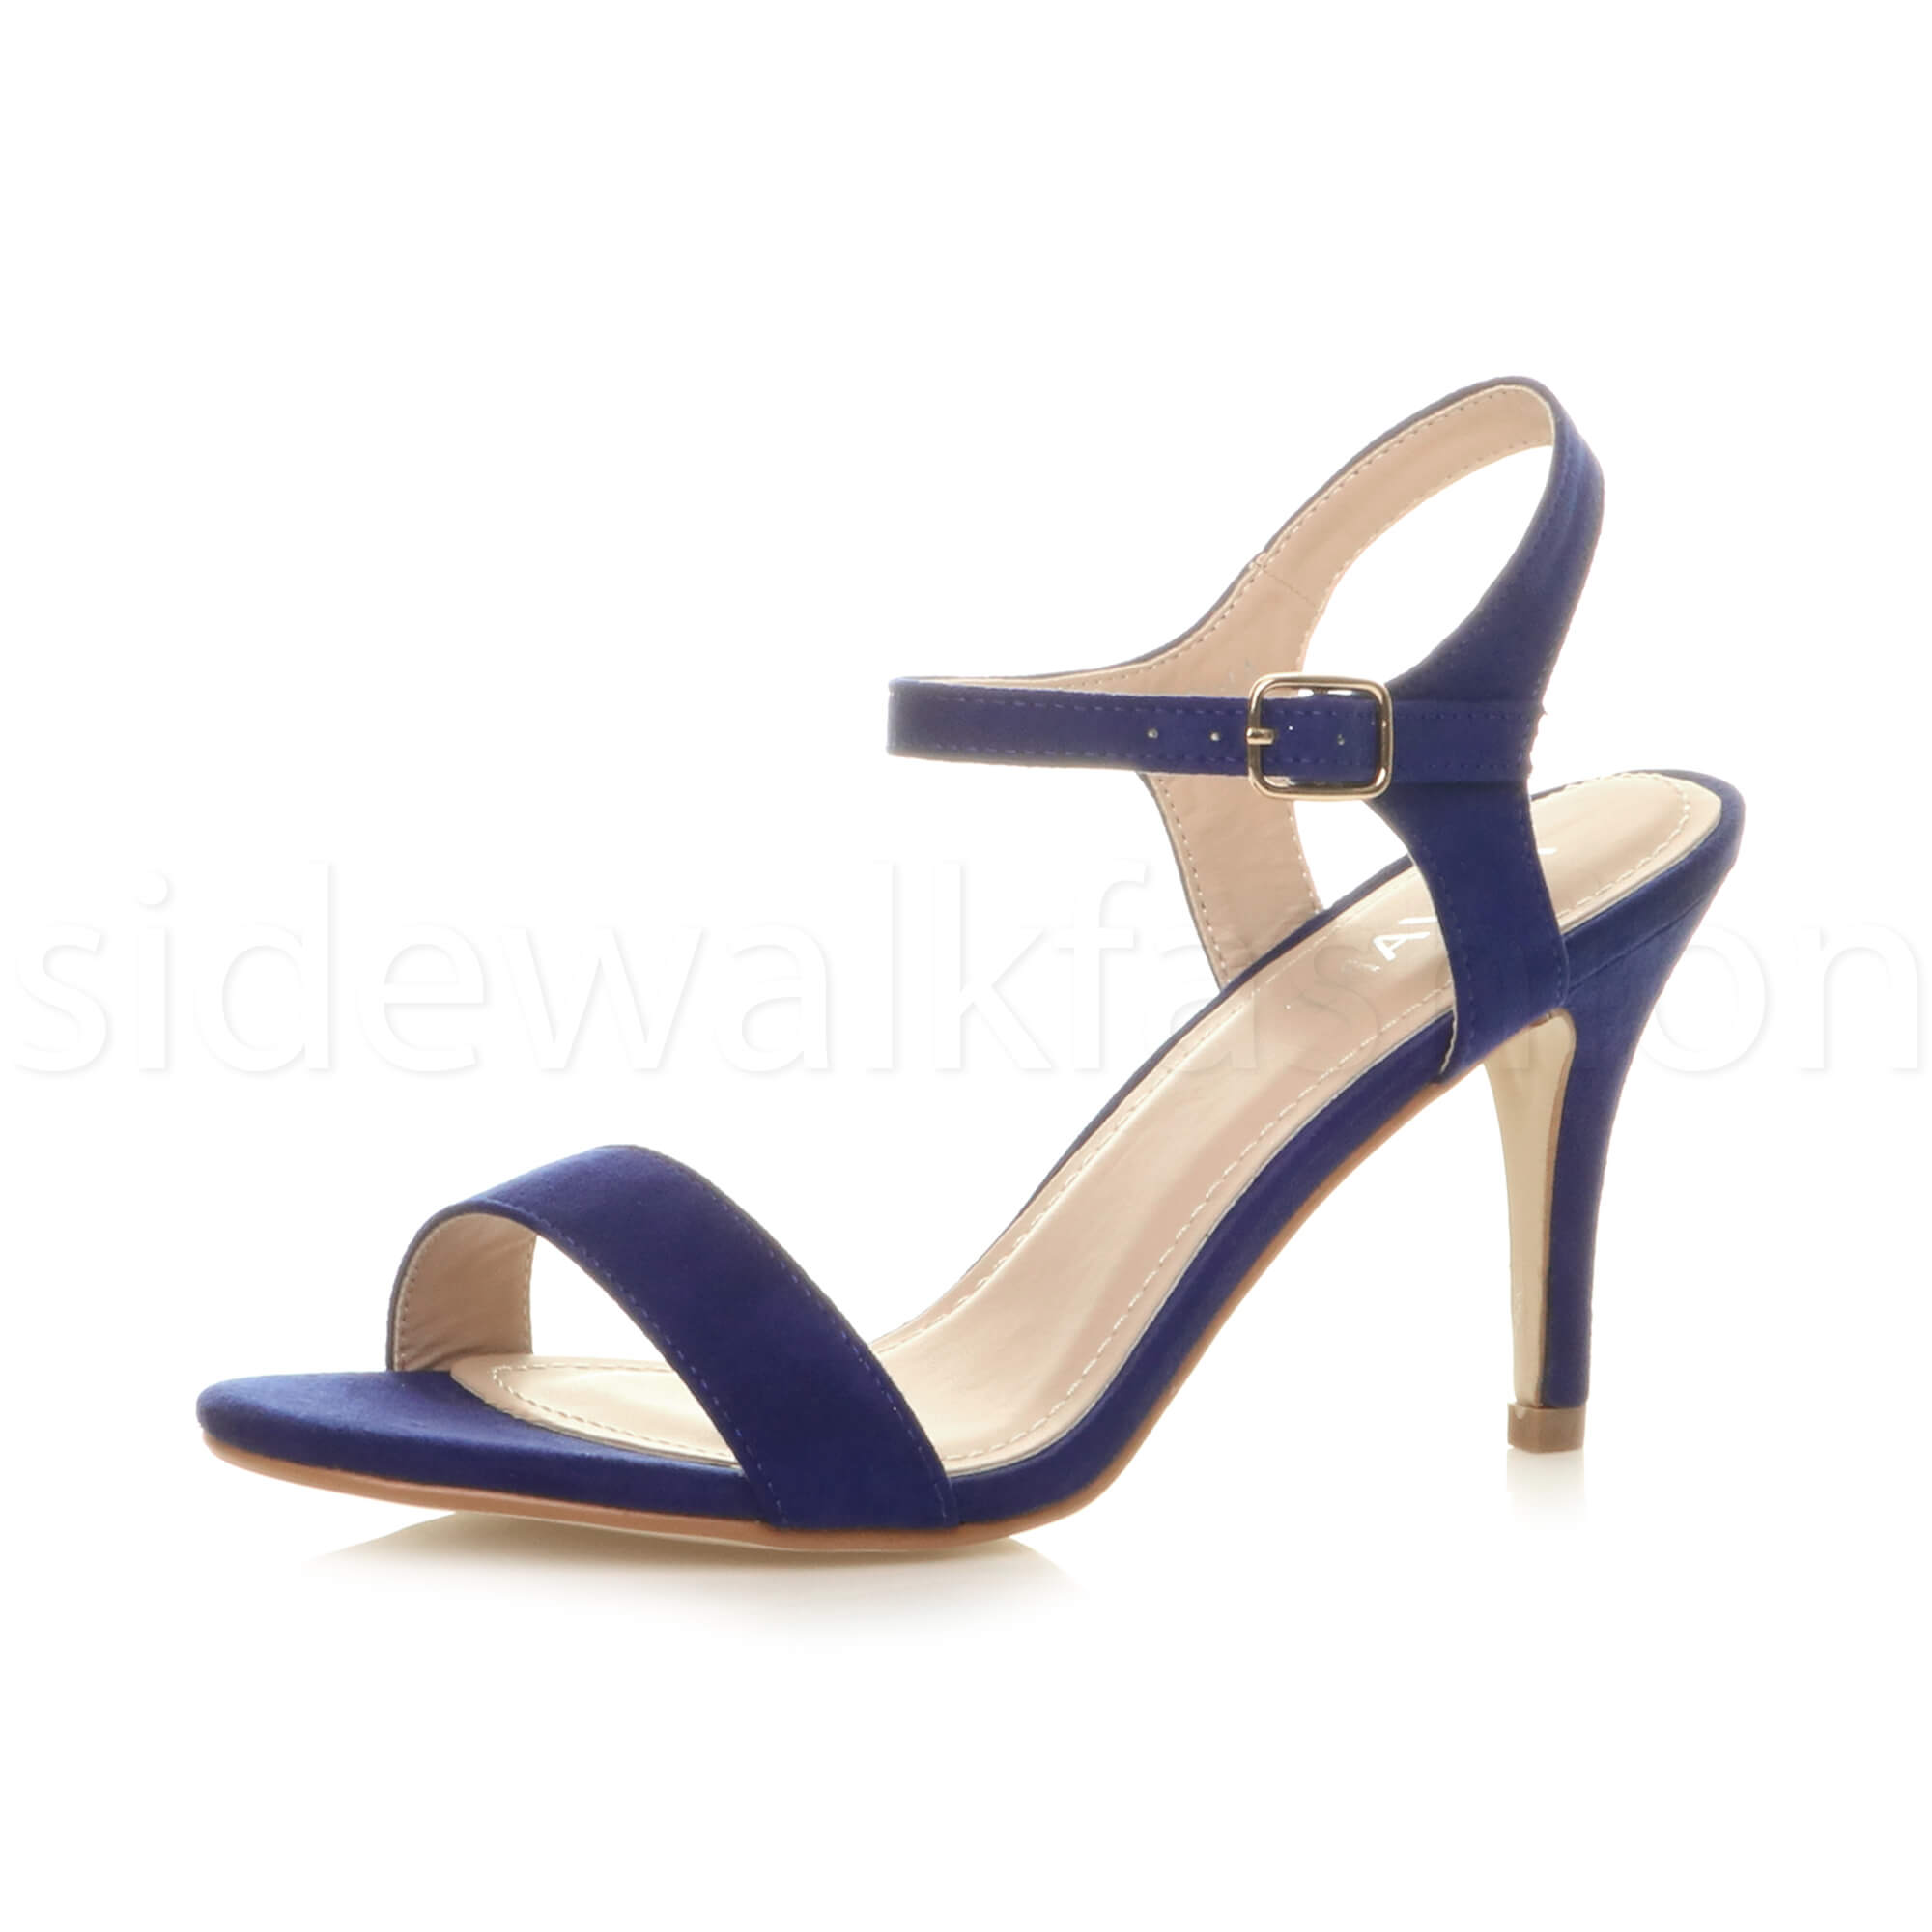 womens high heel ladies strappy evening prom simple party shoes sandals size ebay. Black Bedroom Furniture Sets. Home Design Ideas